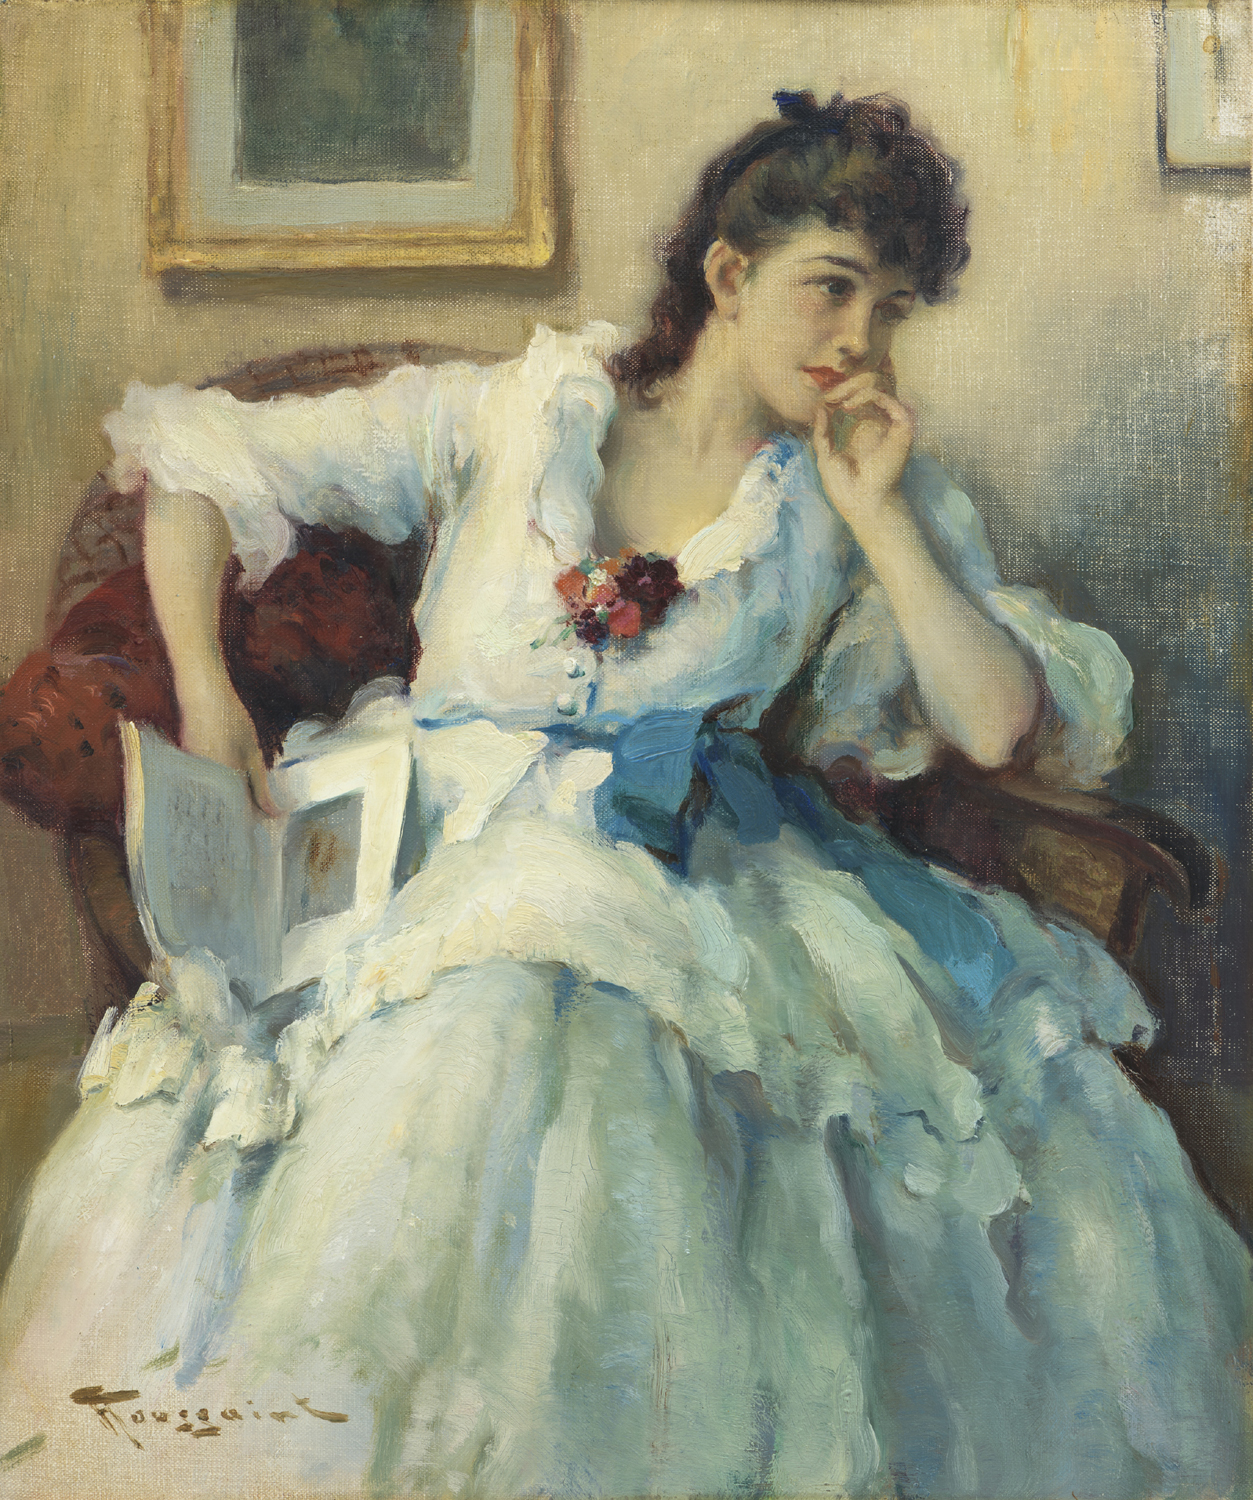 Fernand Toussaint | A young lady in a white dress | Kunsthandel Bies | Bies Gallery